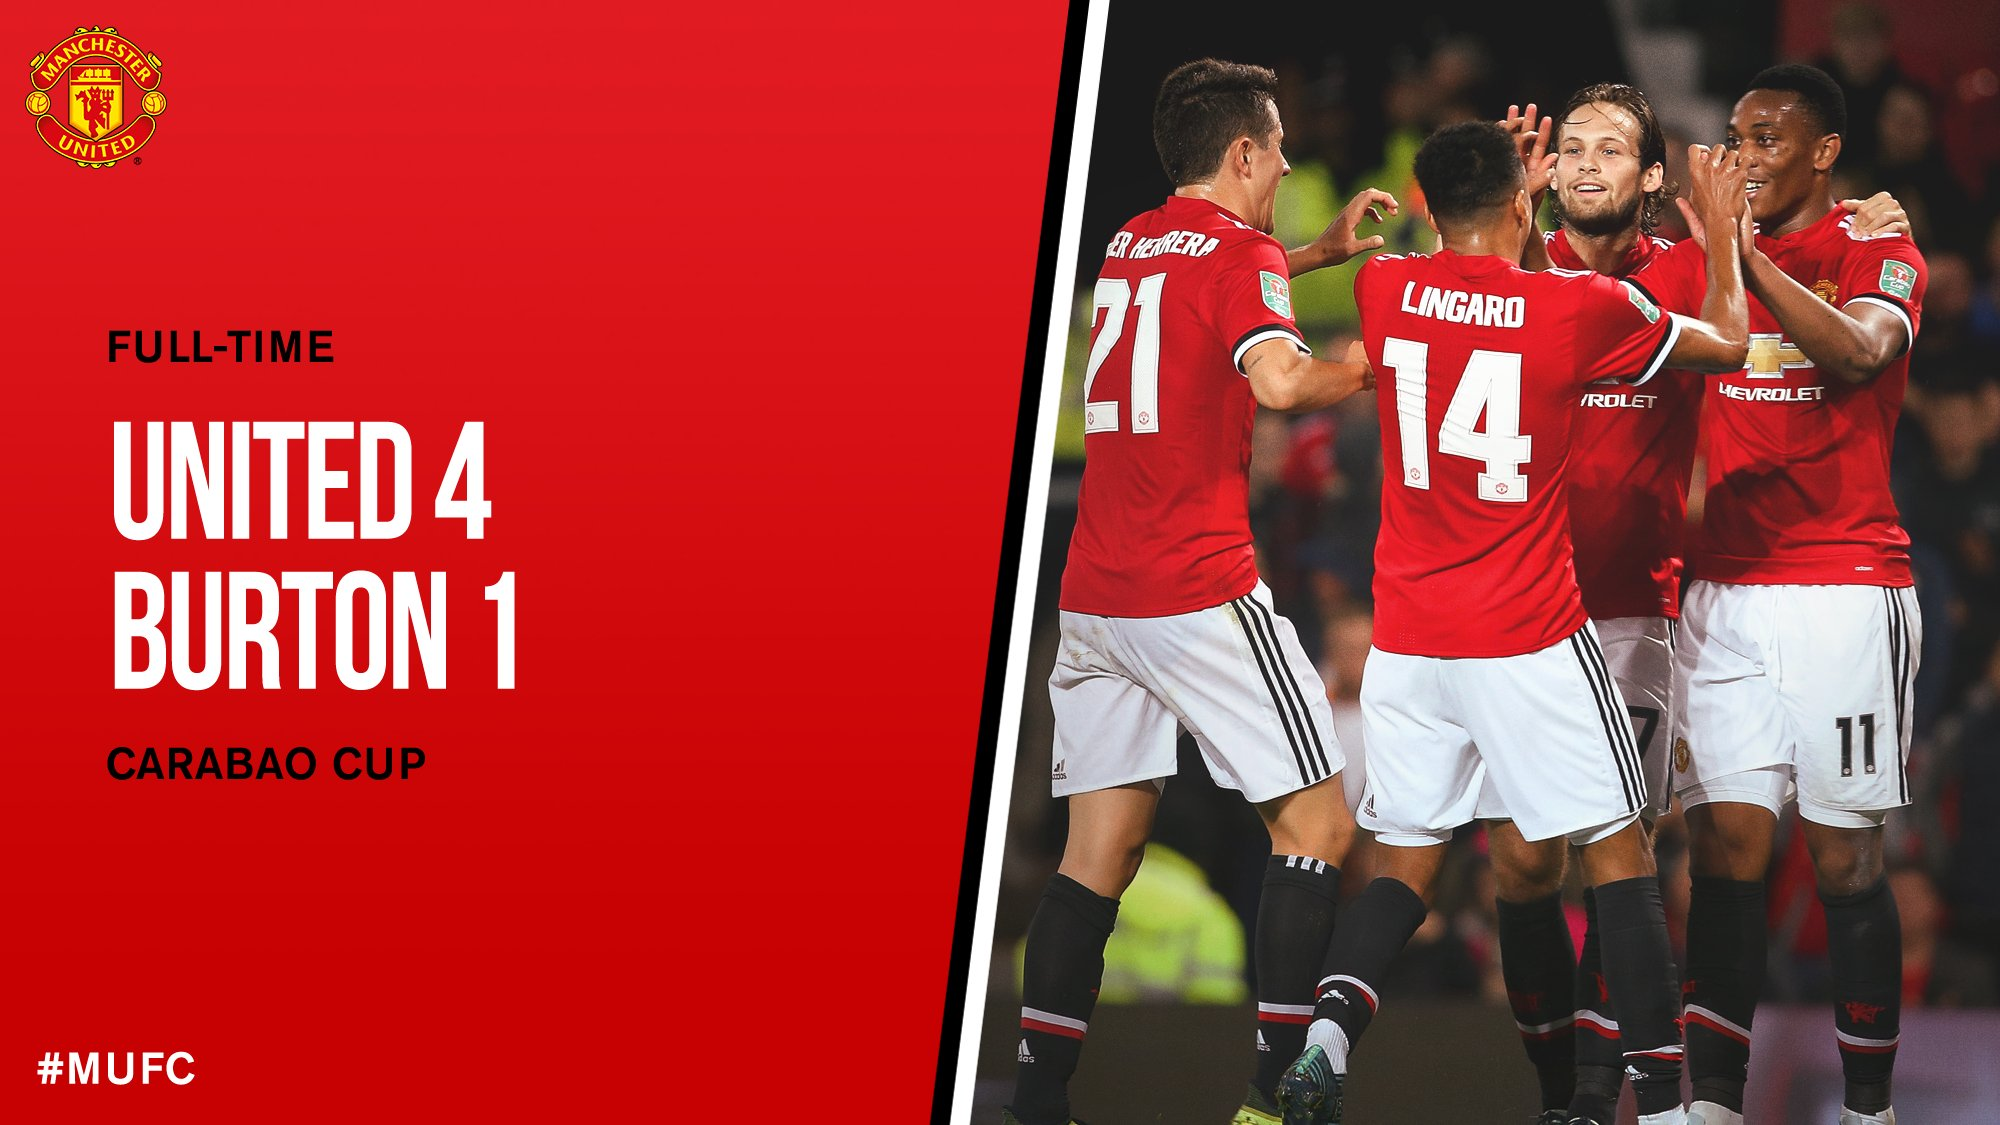 582c9d2fe1c Manchester United have managed to score 4 goals for the fourth time this  season. Unfortunately